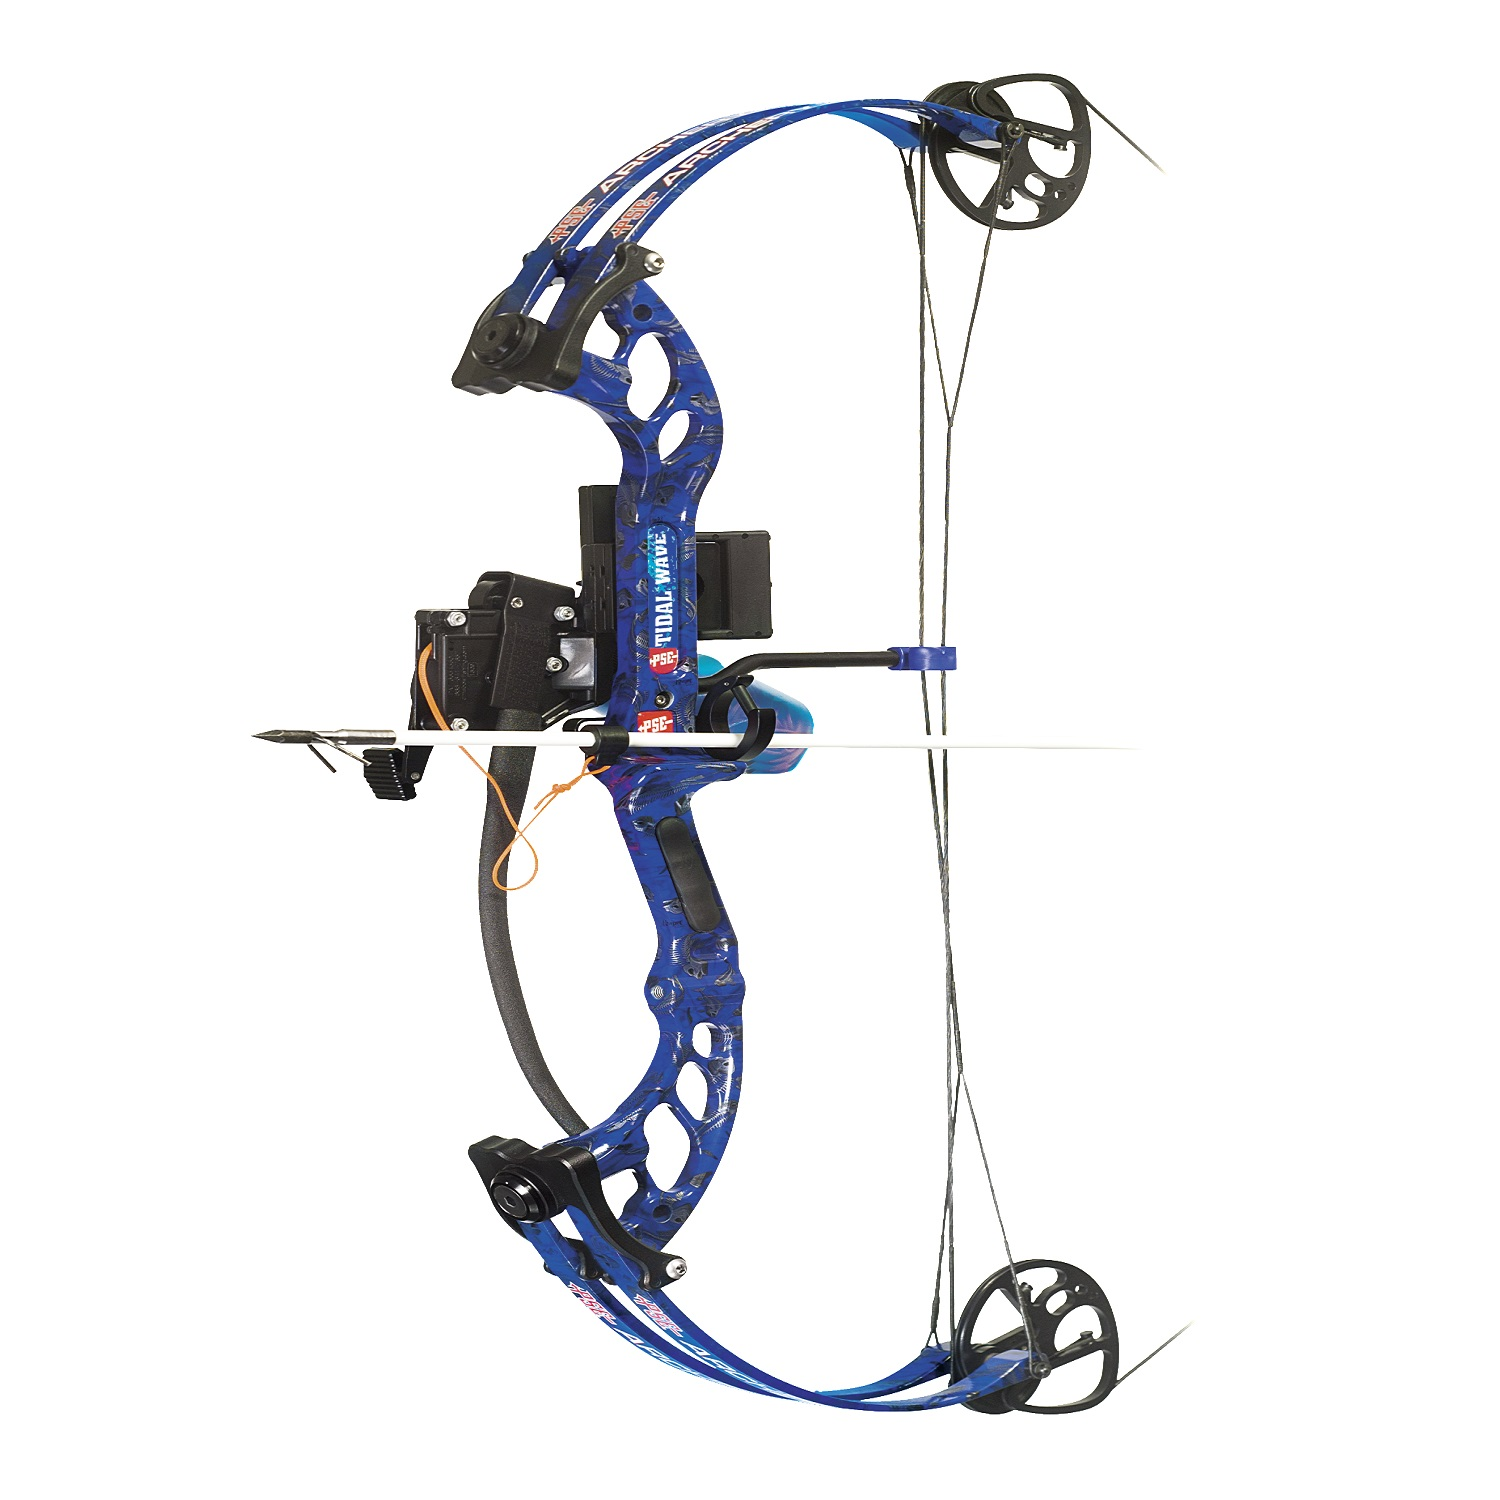 Pse tidal wave bowfishing bow package lh 40 lbs for Bow fishing bows